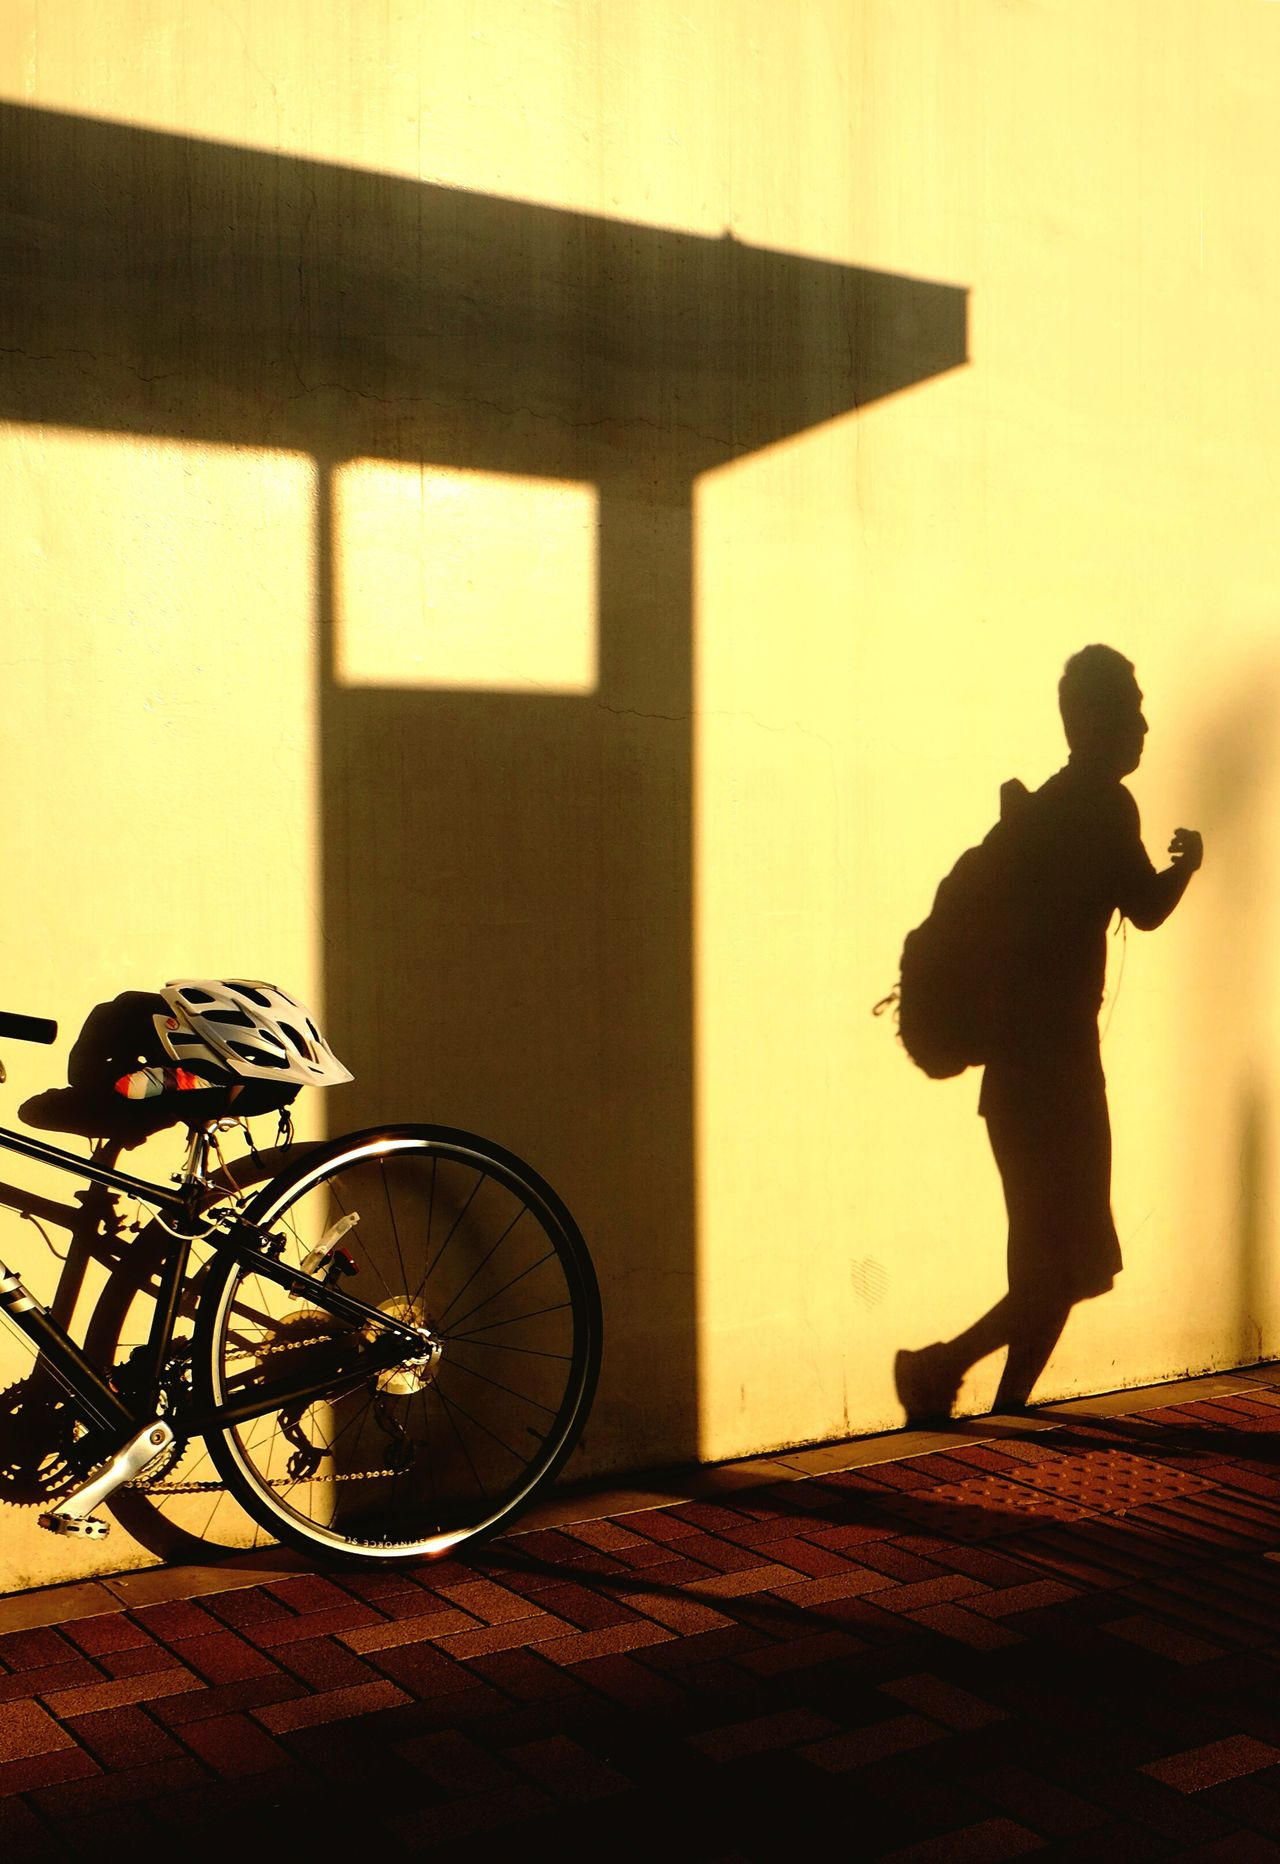 Shadow play Sunlight Shadow Running Running Late Runner Bicycle Runners Running Time Shadows & Lights Shadows Shadowplay Shadow And Light Sunlight